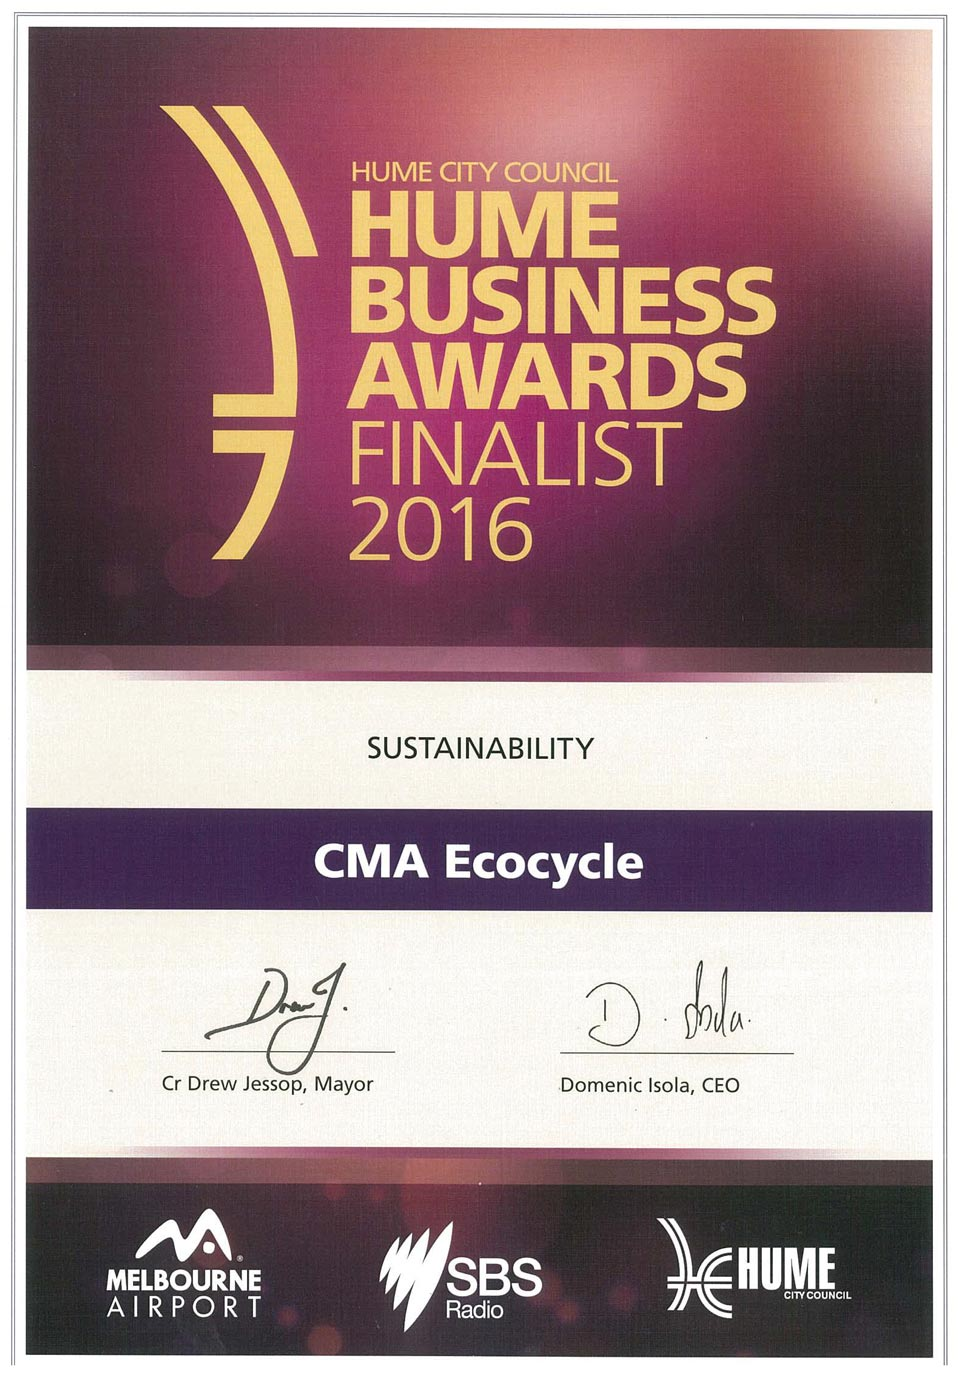 Hume-Business-Finalist-certificate